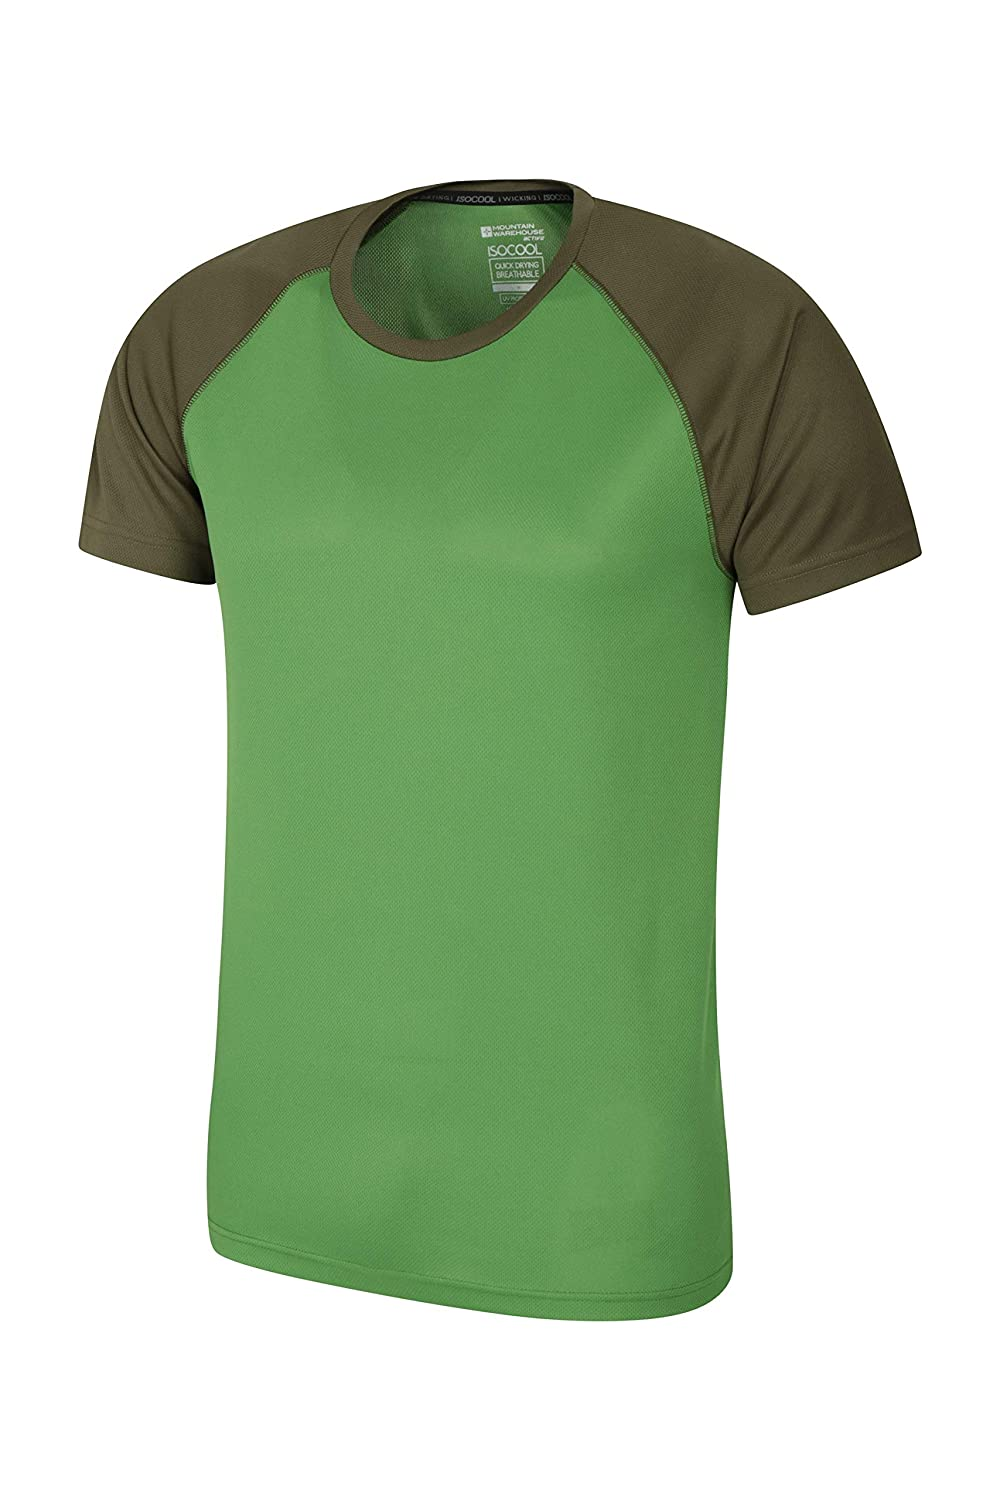 5c3d29760 Mountain Warehouse Endurance Mens T-Shirt – Breathable Summer Tee, UPF50  Protection, Lightweight Shirt, Comfortable & Quick Drying Top - for Gym, ...